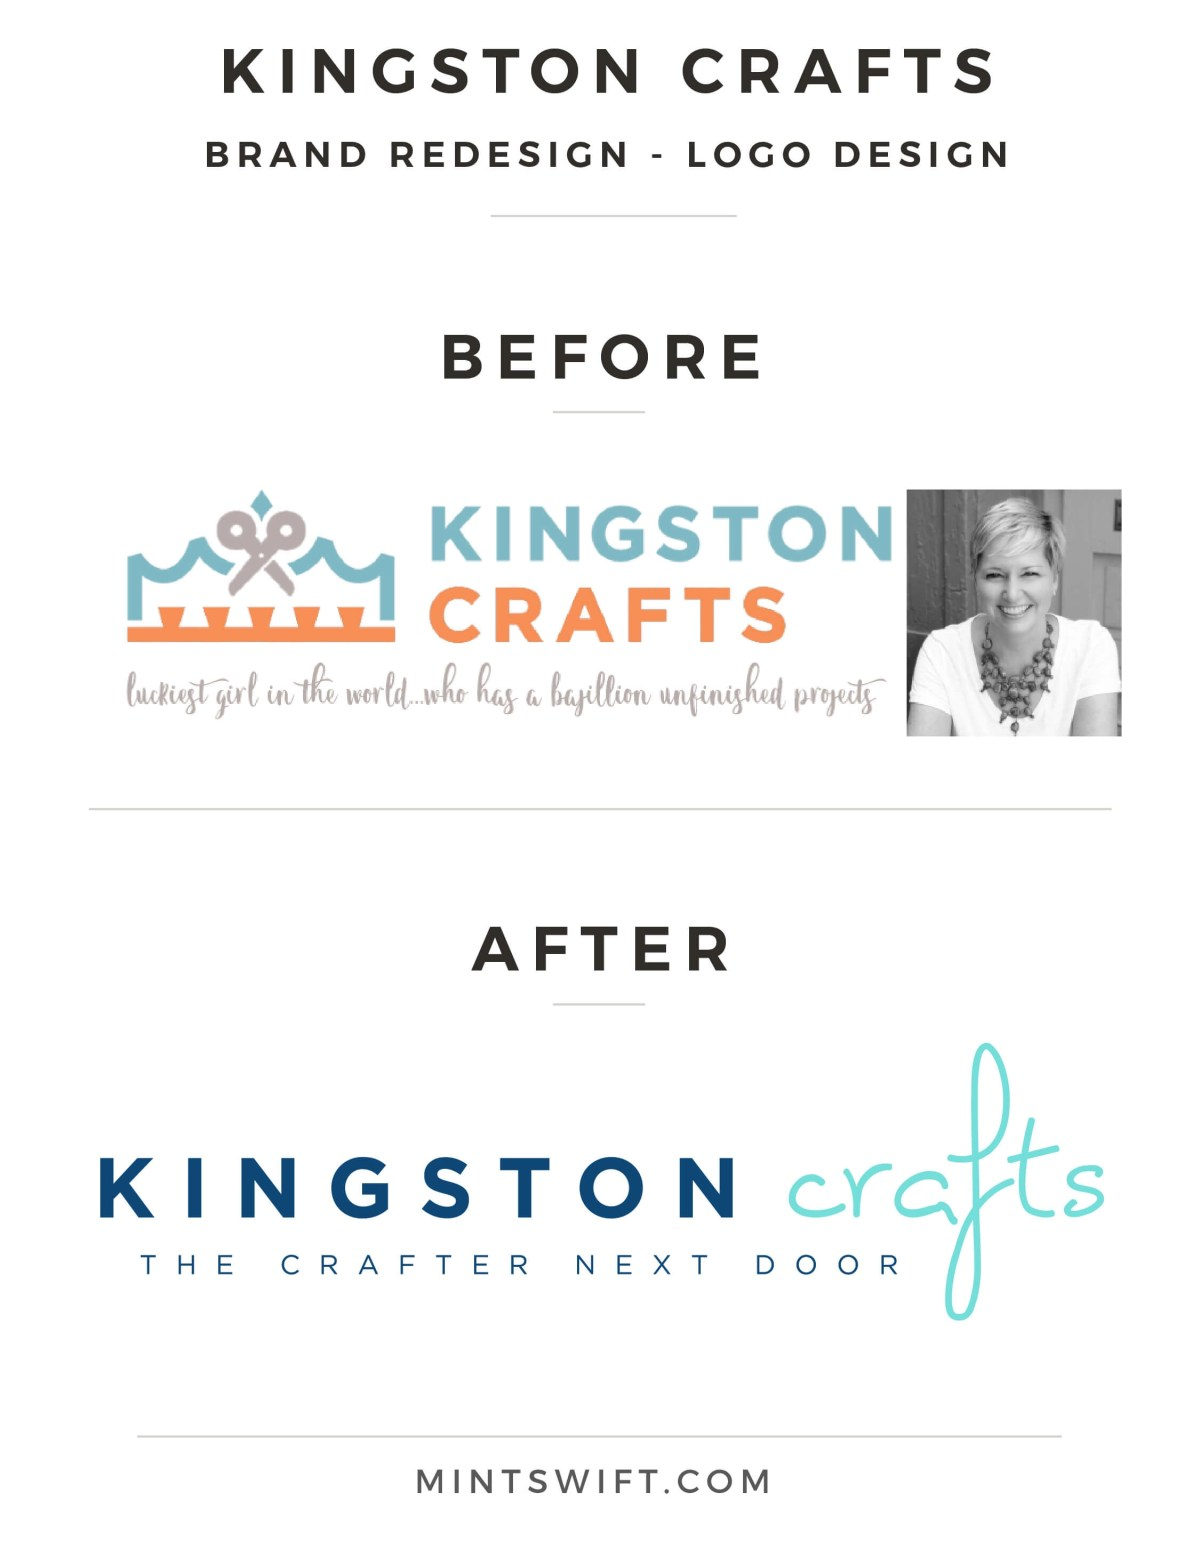 Kingston Crafts Brand Redesign Logo Design - MintSwift